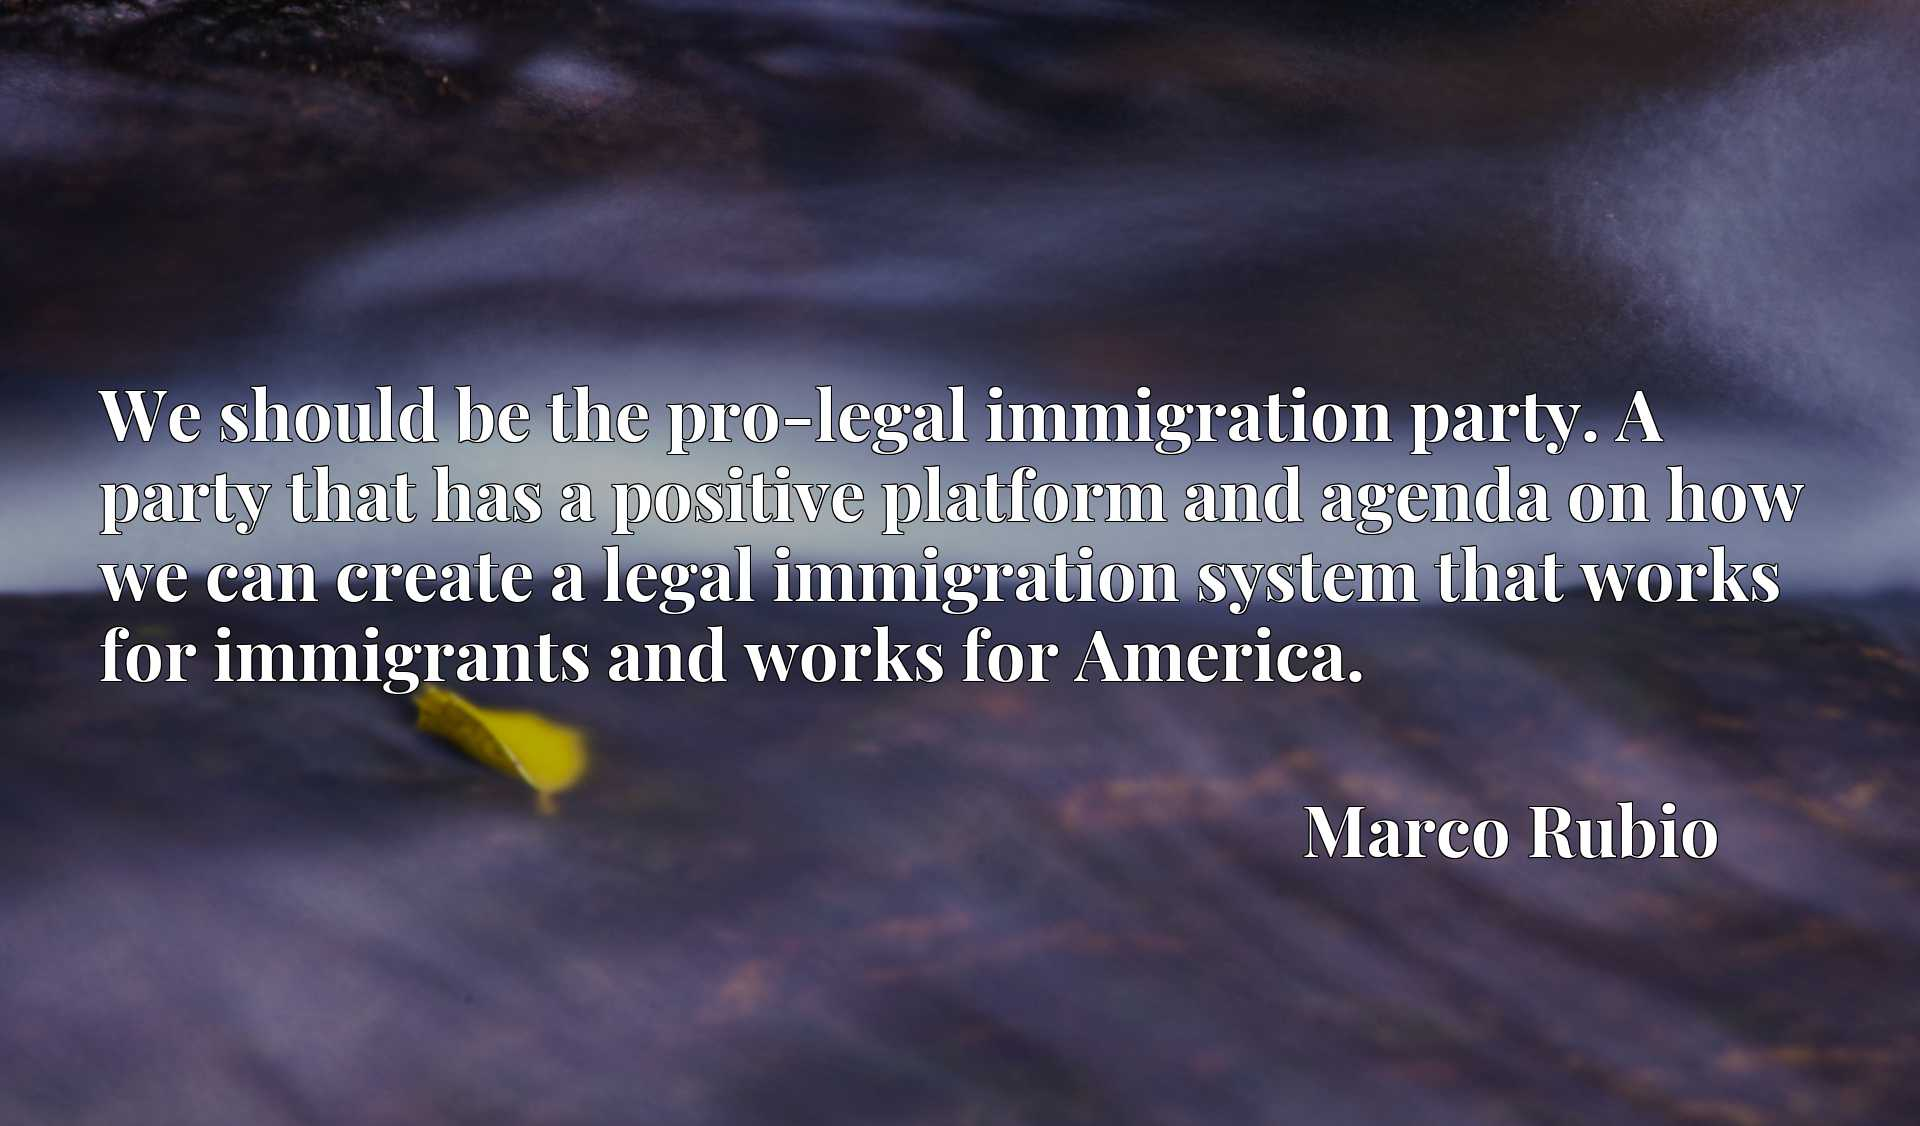 We should be the pro-legal immigration party. A party that has a positive platform and agenda on how we can create a legal immigration system that works for immigrants and works for America.